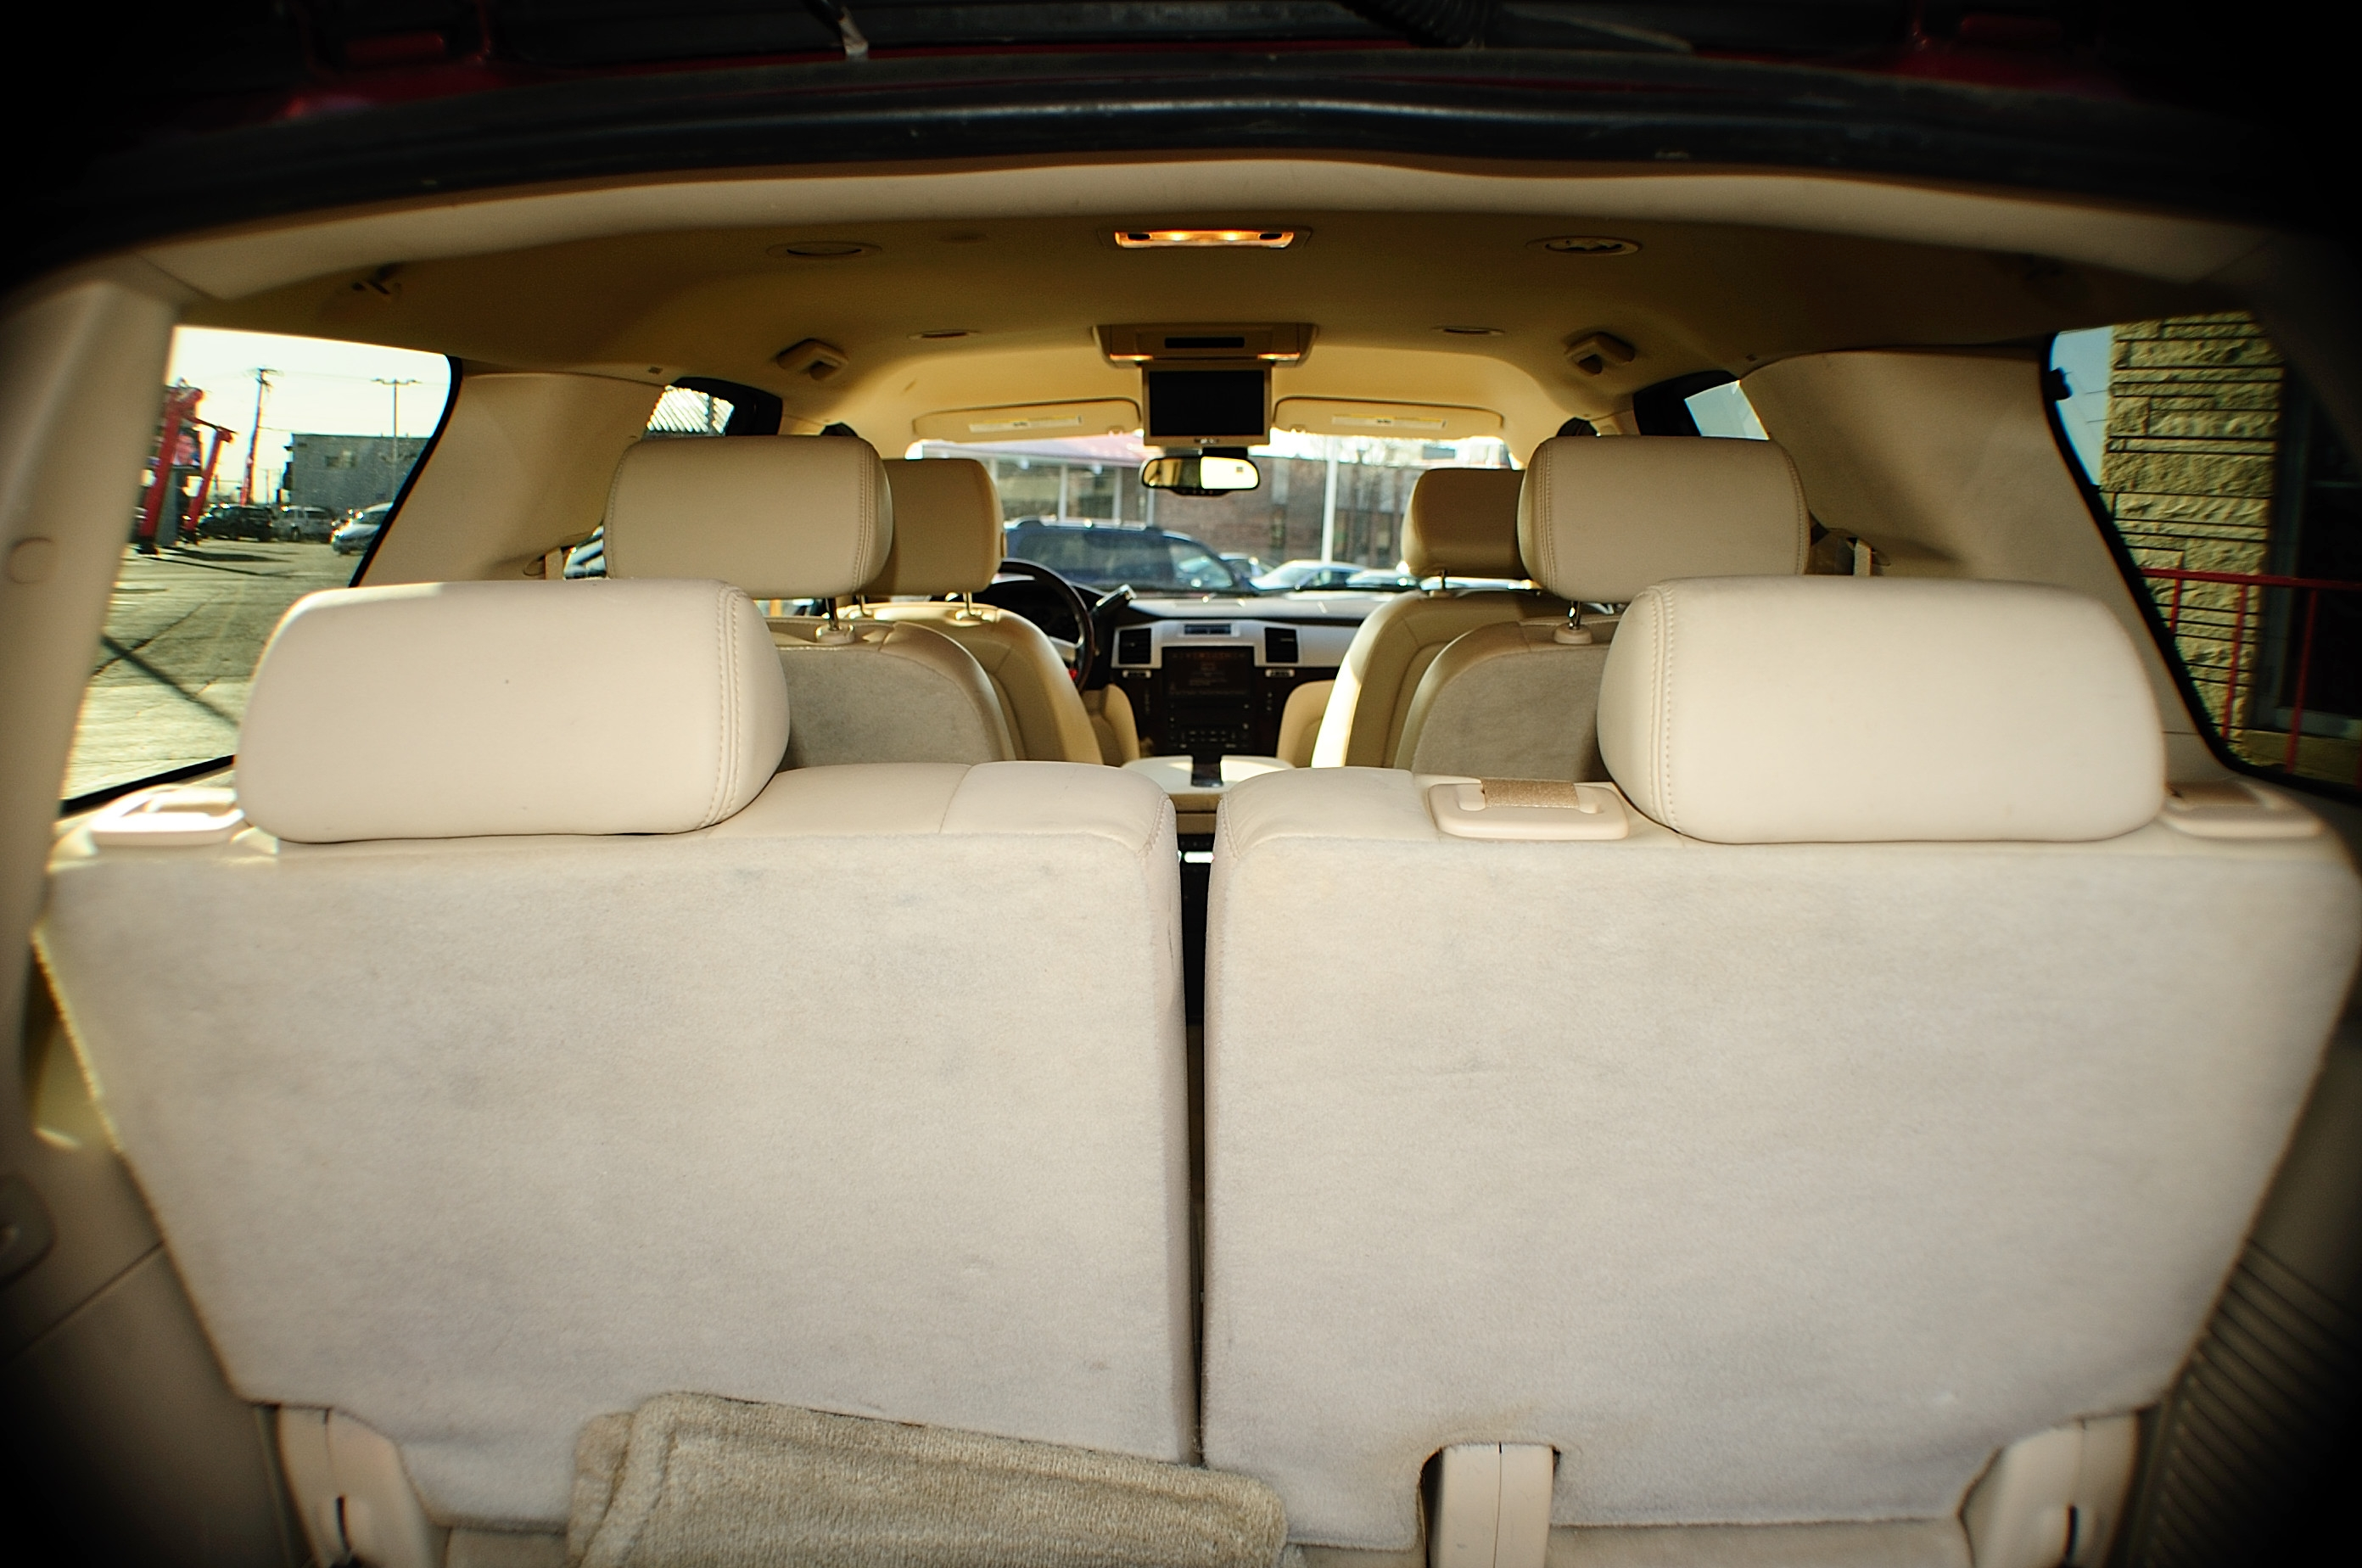 2007 Cadillac Escalade Red 4x4 Used SUV Sale Chicago Illinois